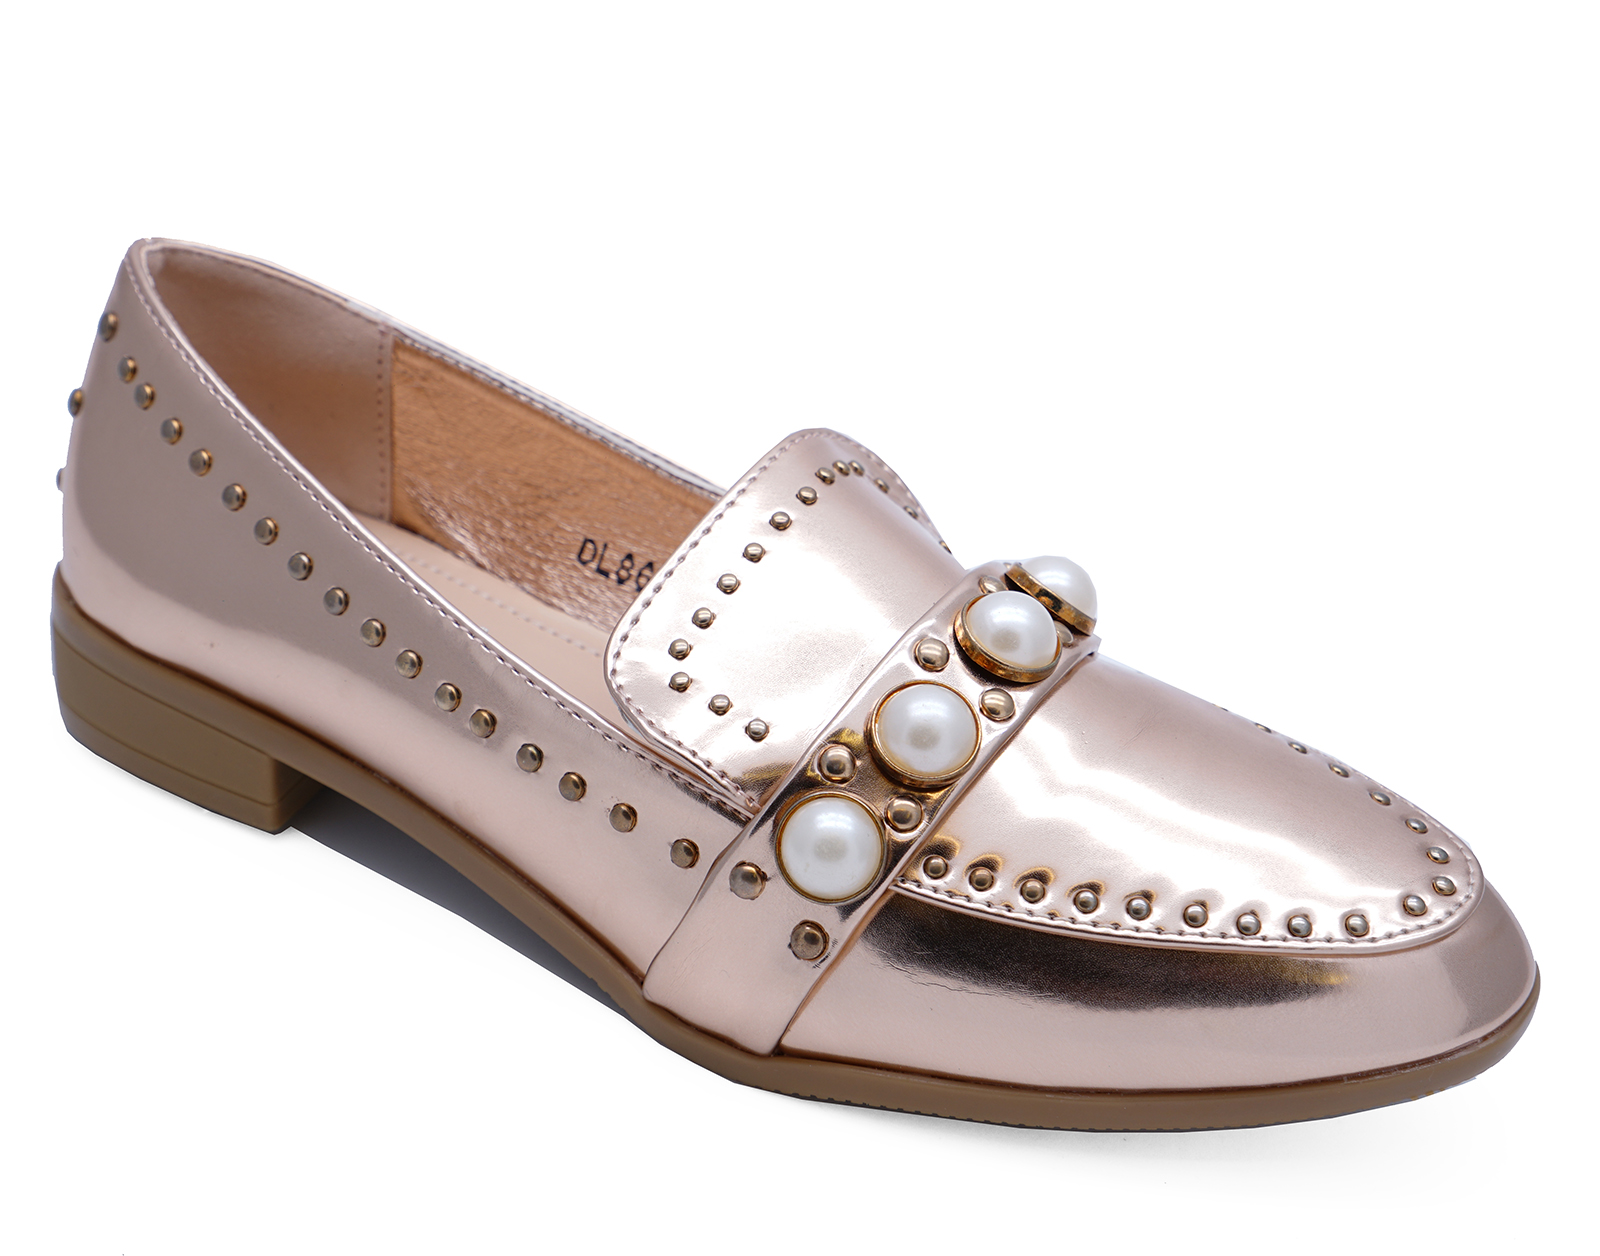 19abafb13ef Details about womens flat rose gold slip on comfy pearl patent loafers pump  shoes sizes jpg